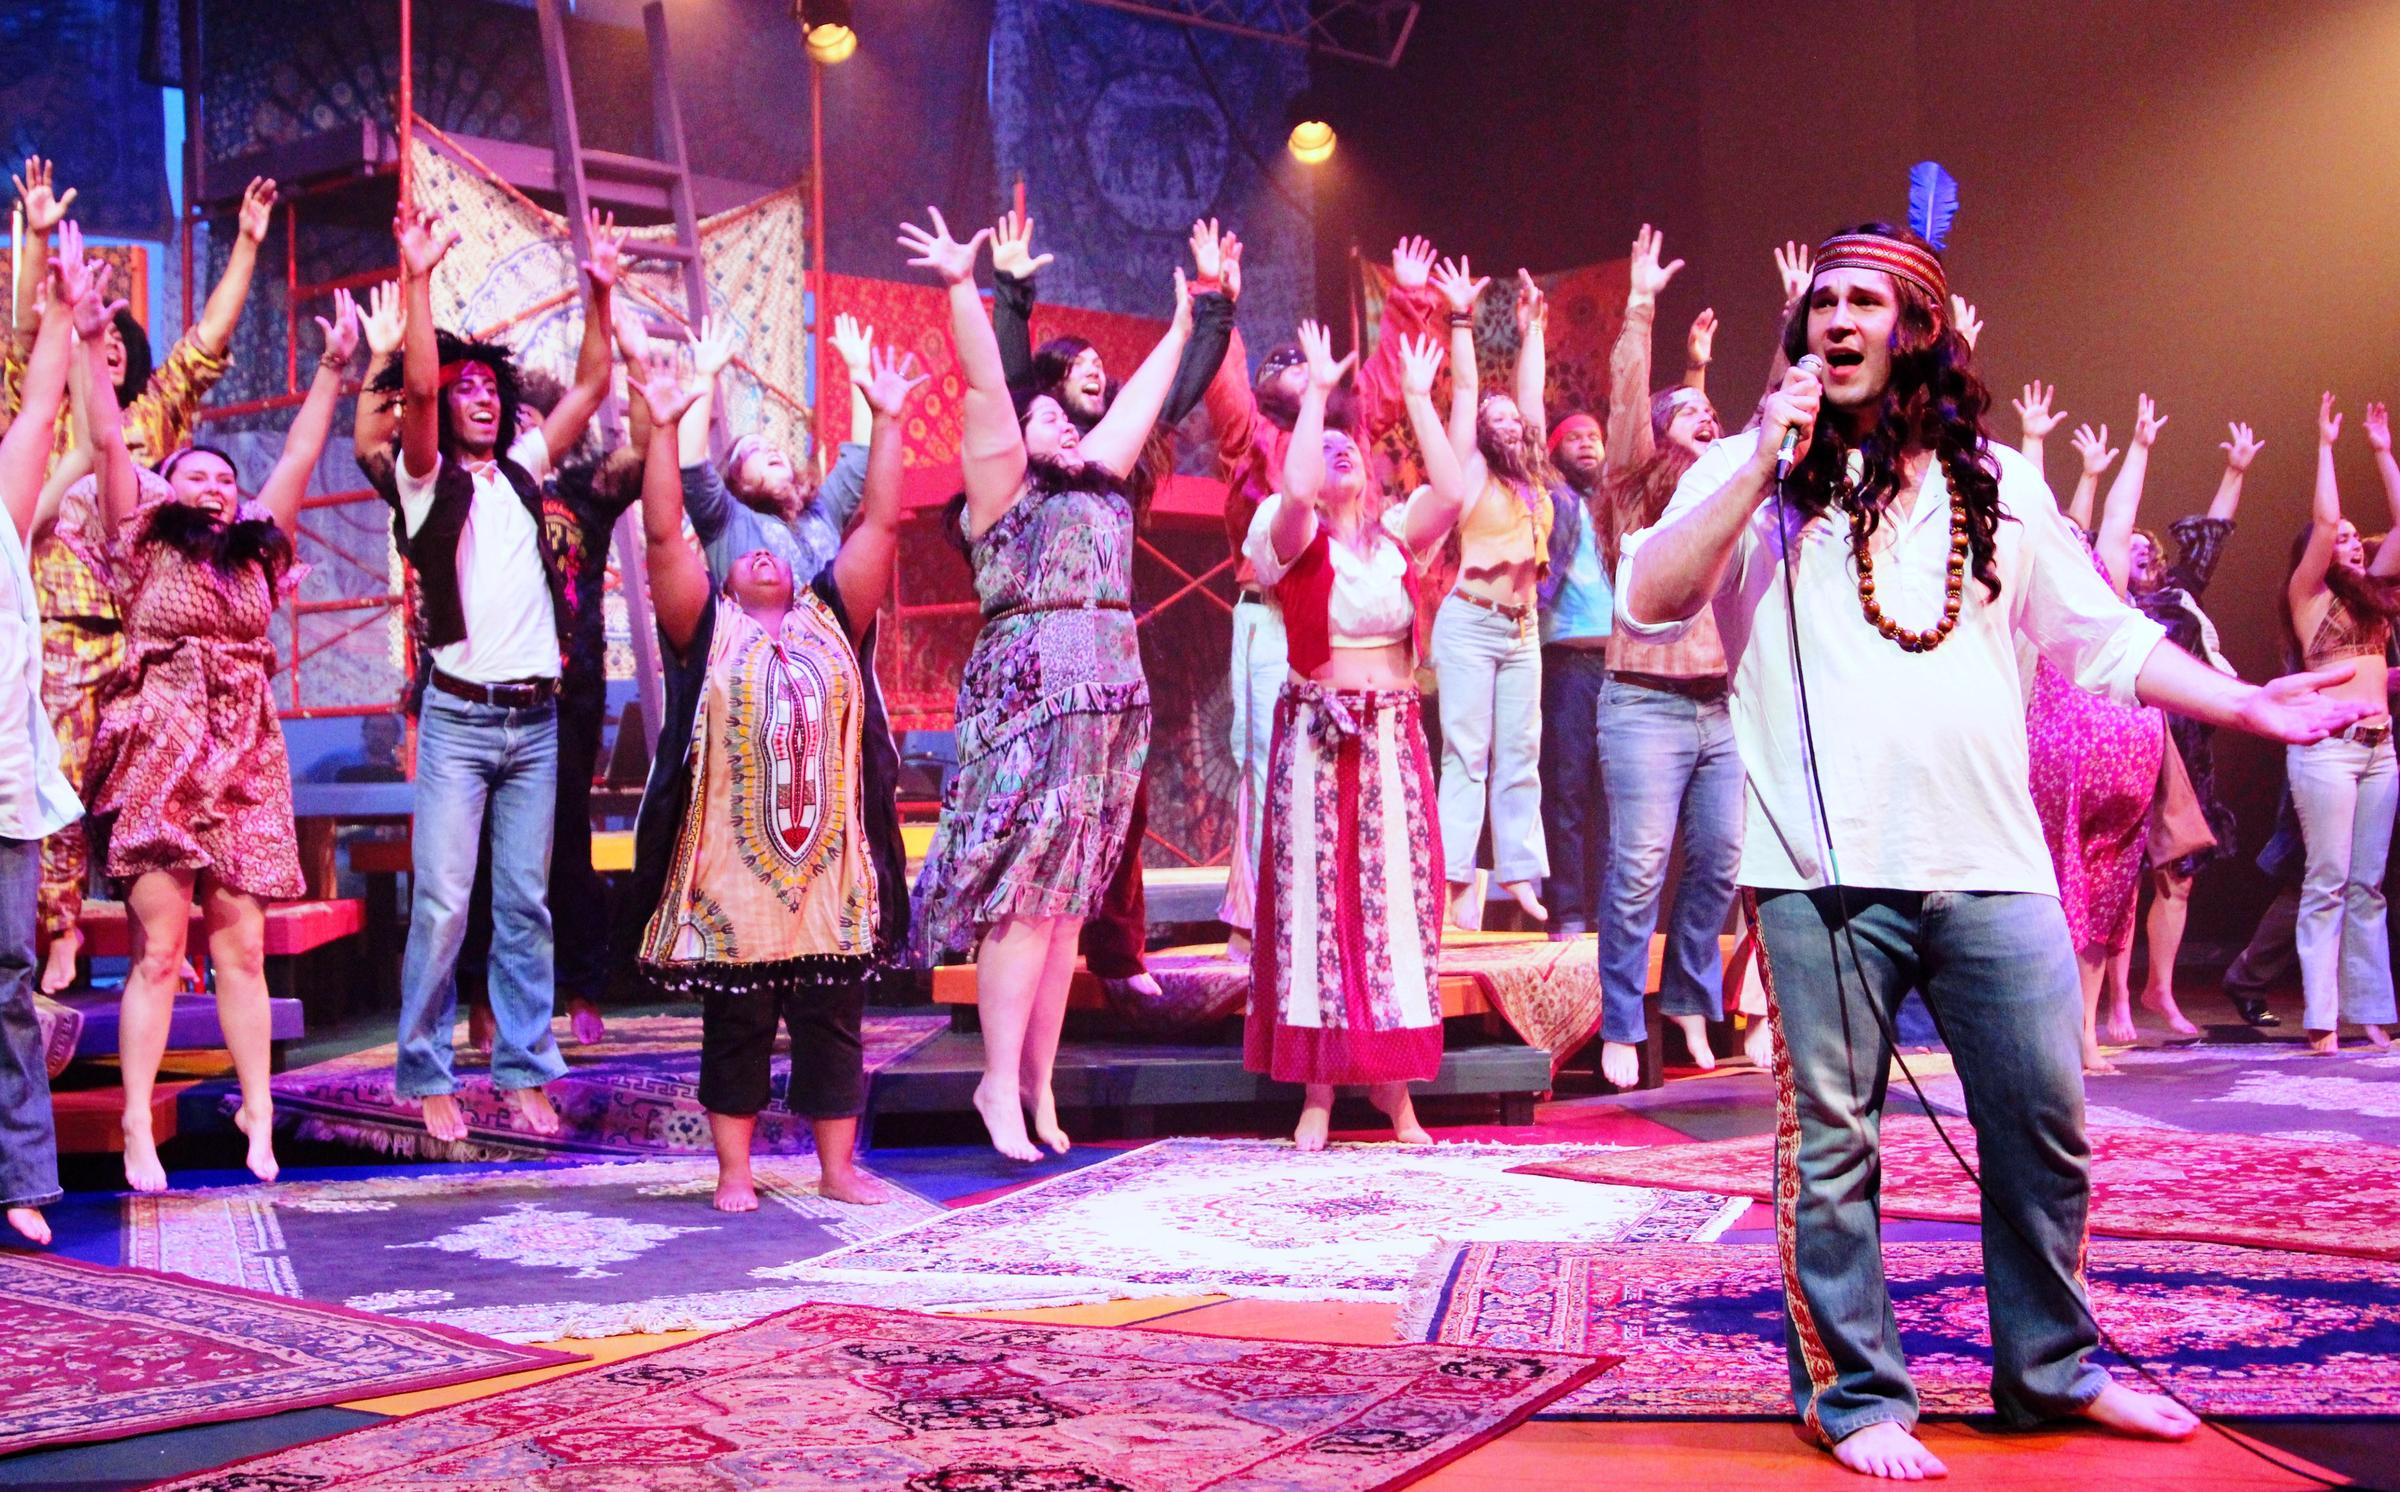 New Musical Theatre pany Joins The Fort Wayne Arts Scene